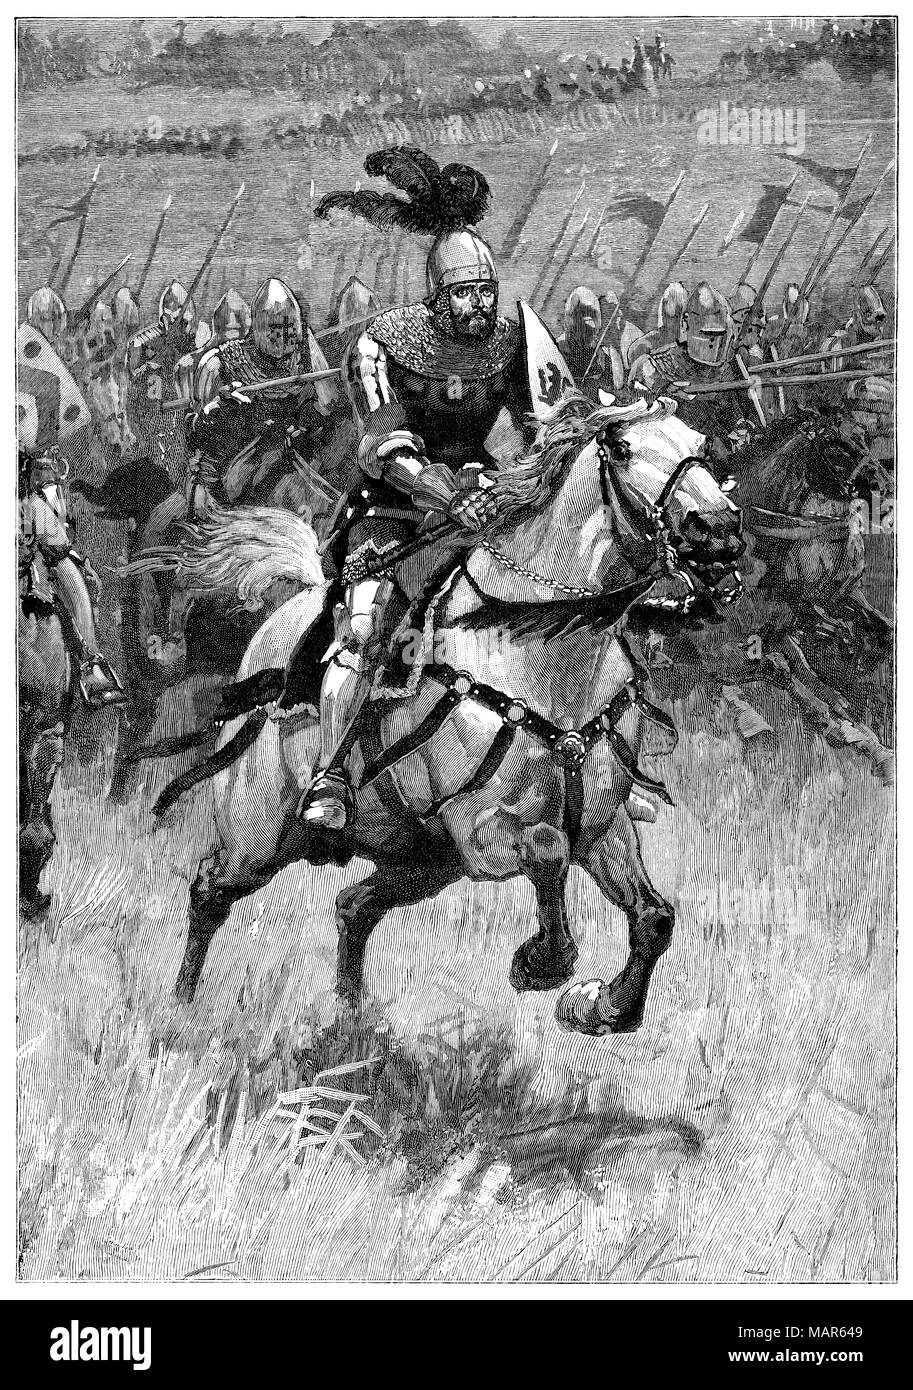 1891 engraving by H. M. Paget to illustrate the poem Charge! by Robert Richardson in The Boy's Own paper. - Stock Image